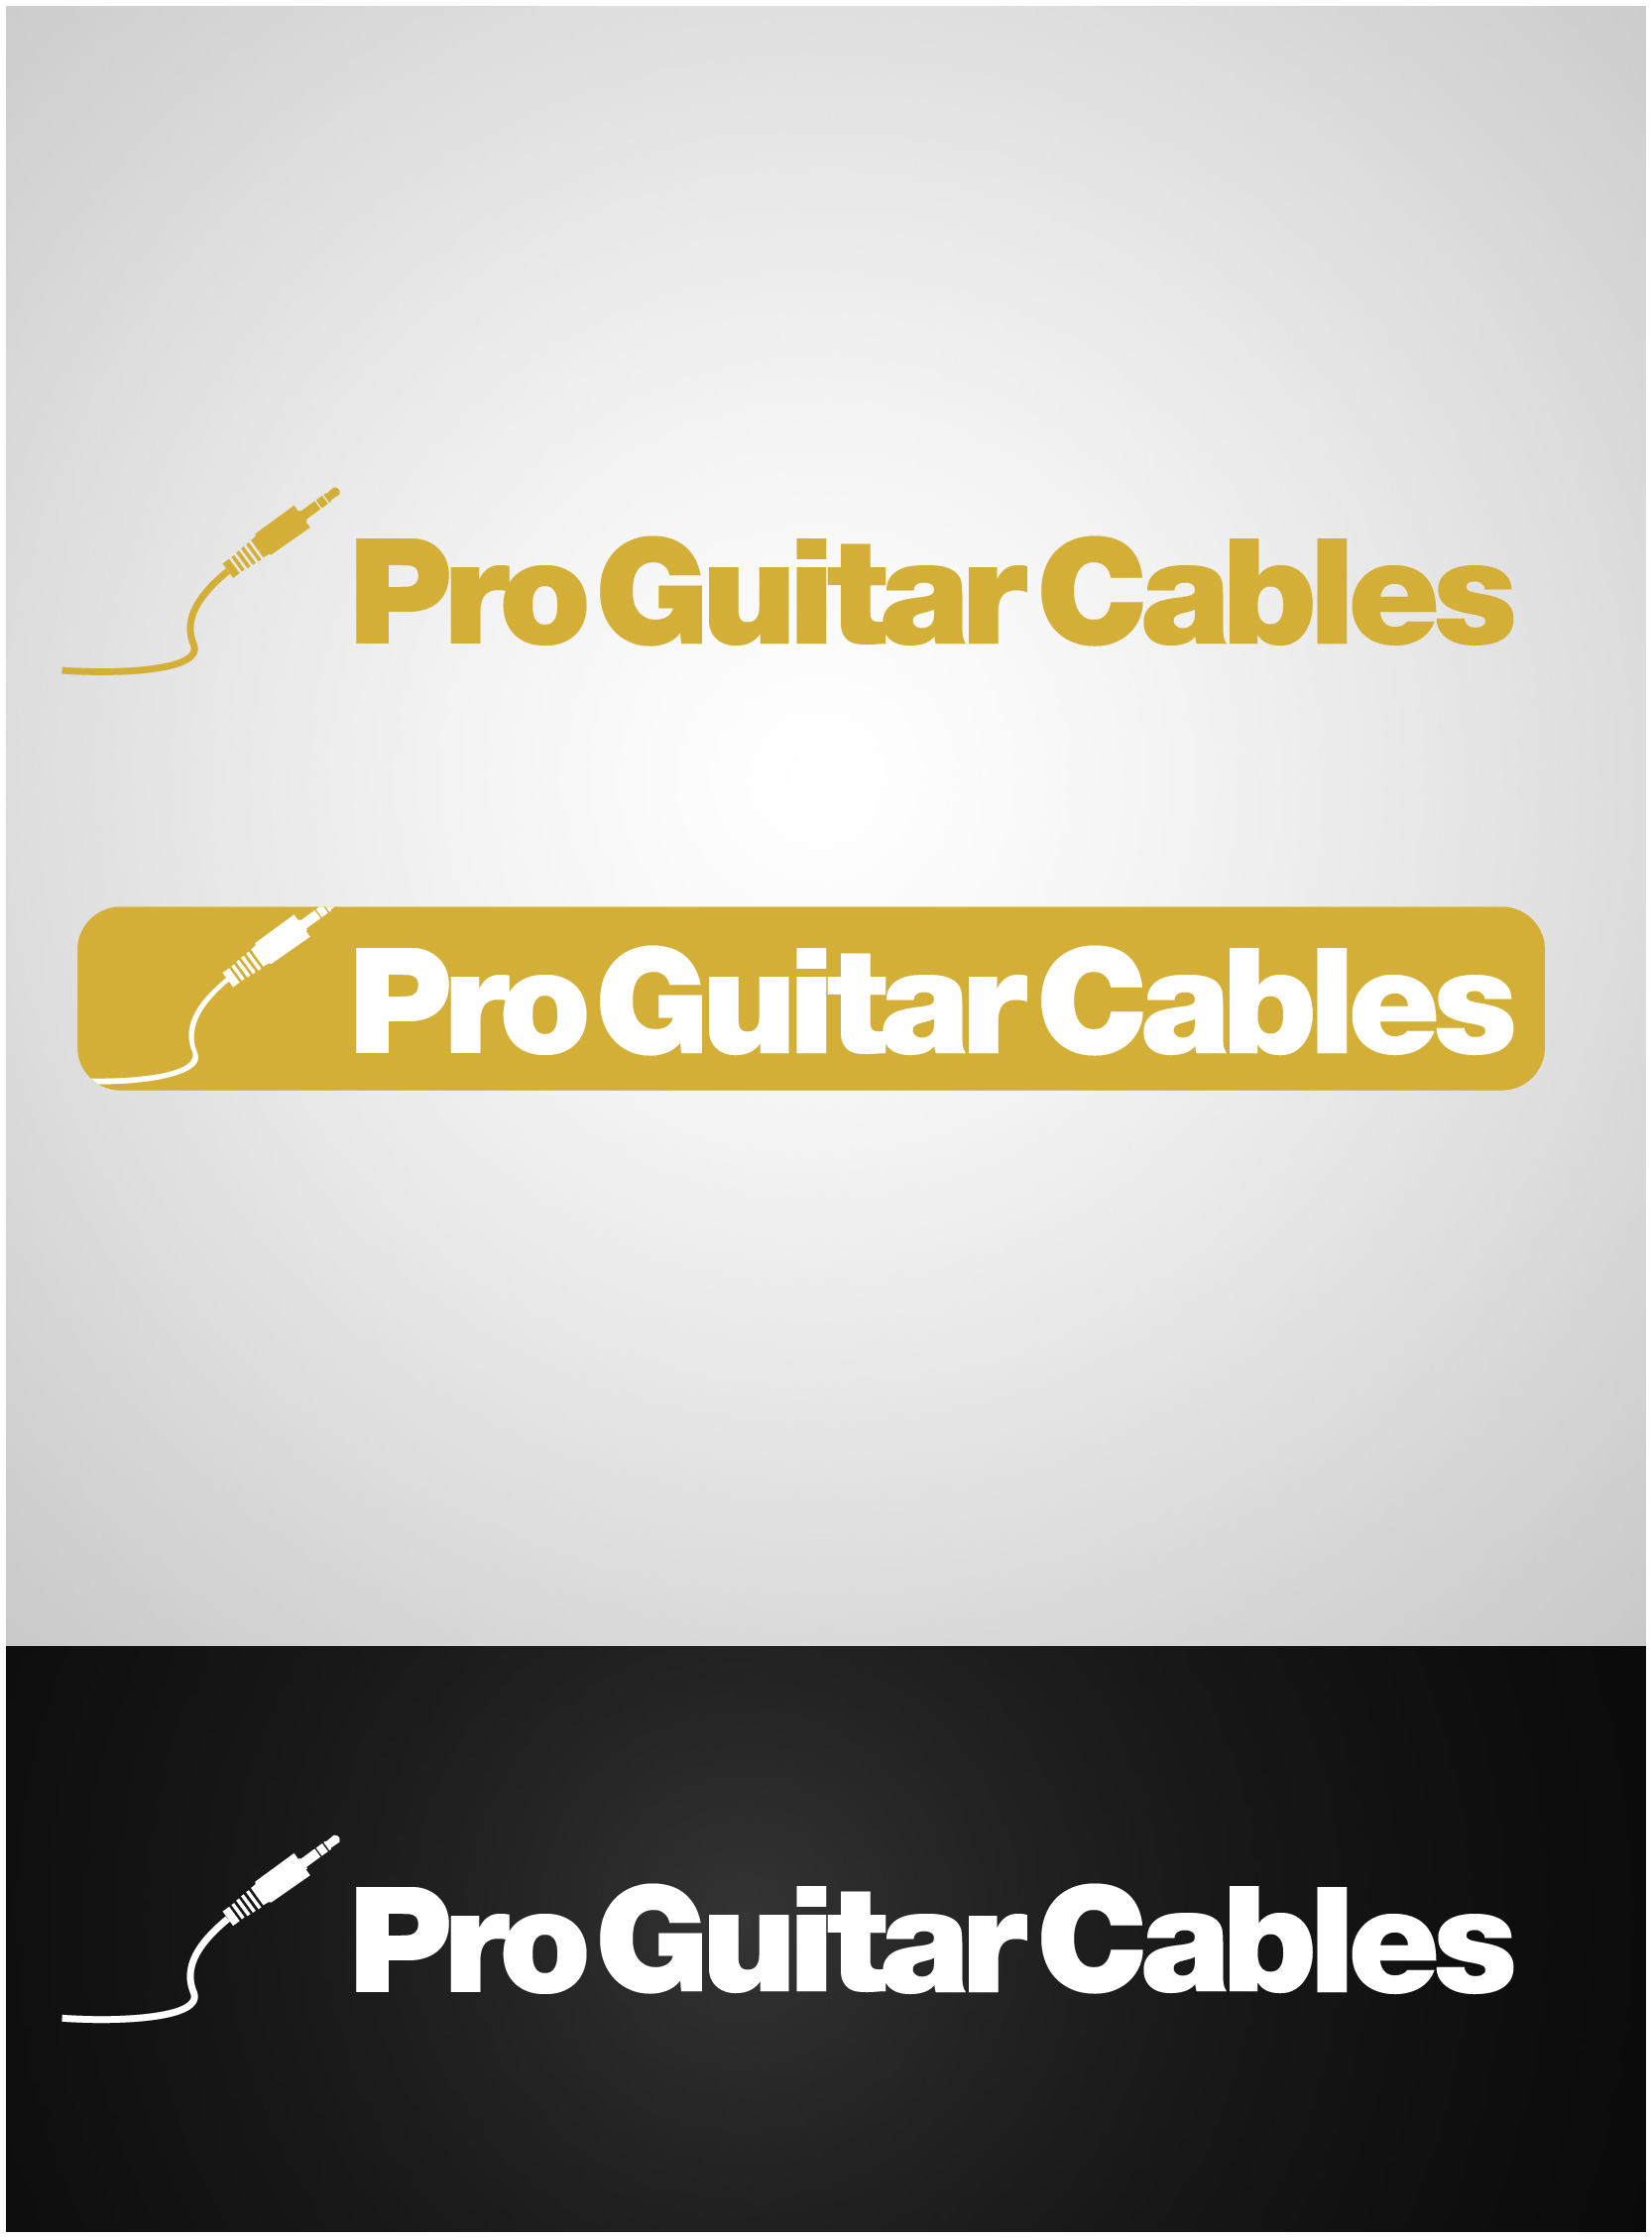 Logo Design by gkonta - Entry No. 60 in the Logo Design Contest Pro Guitar Cables Logo Design.